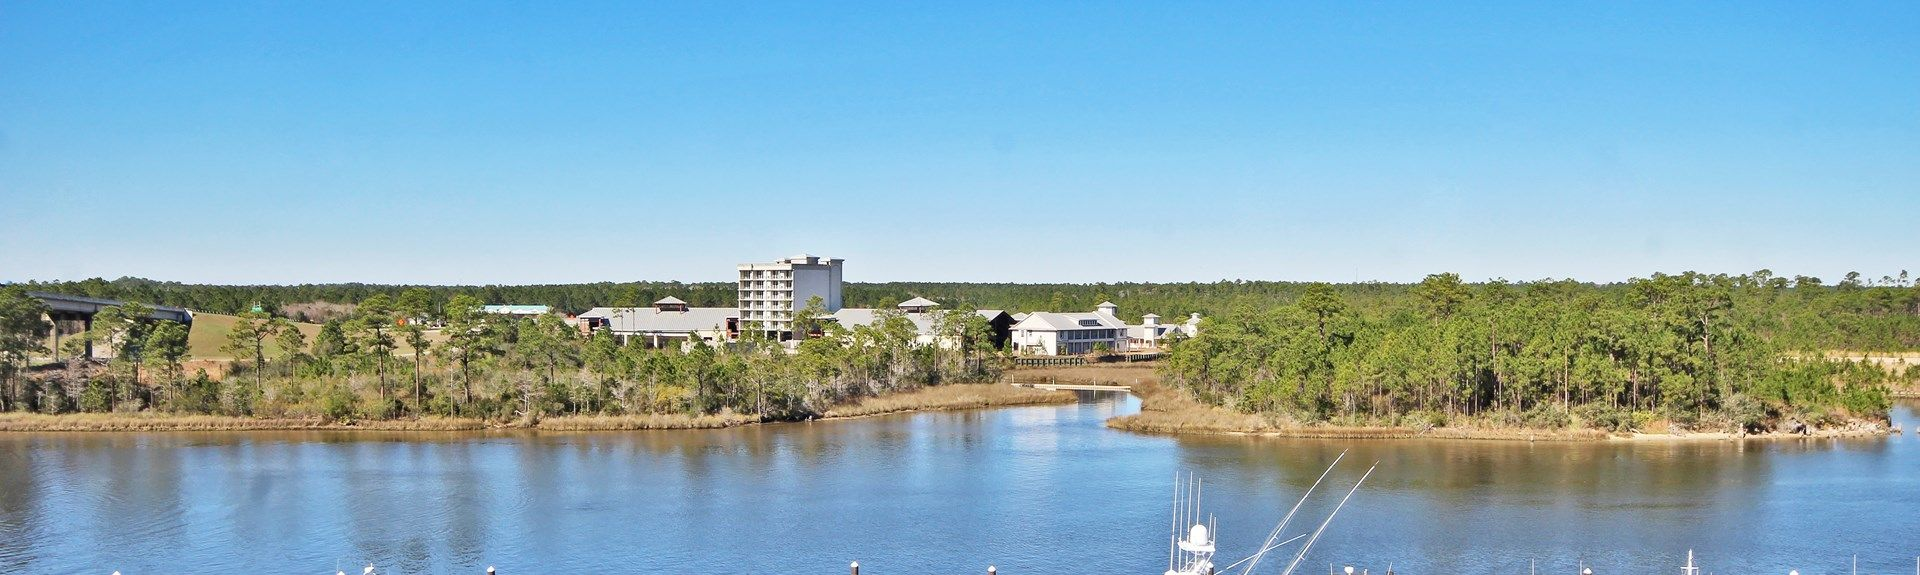 Oyster Bay, Gulf Shores, Alabama, Estados Unidos